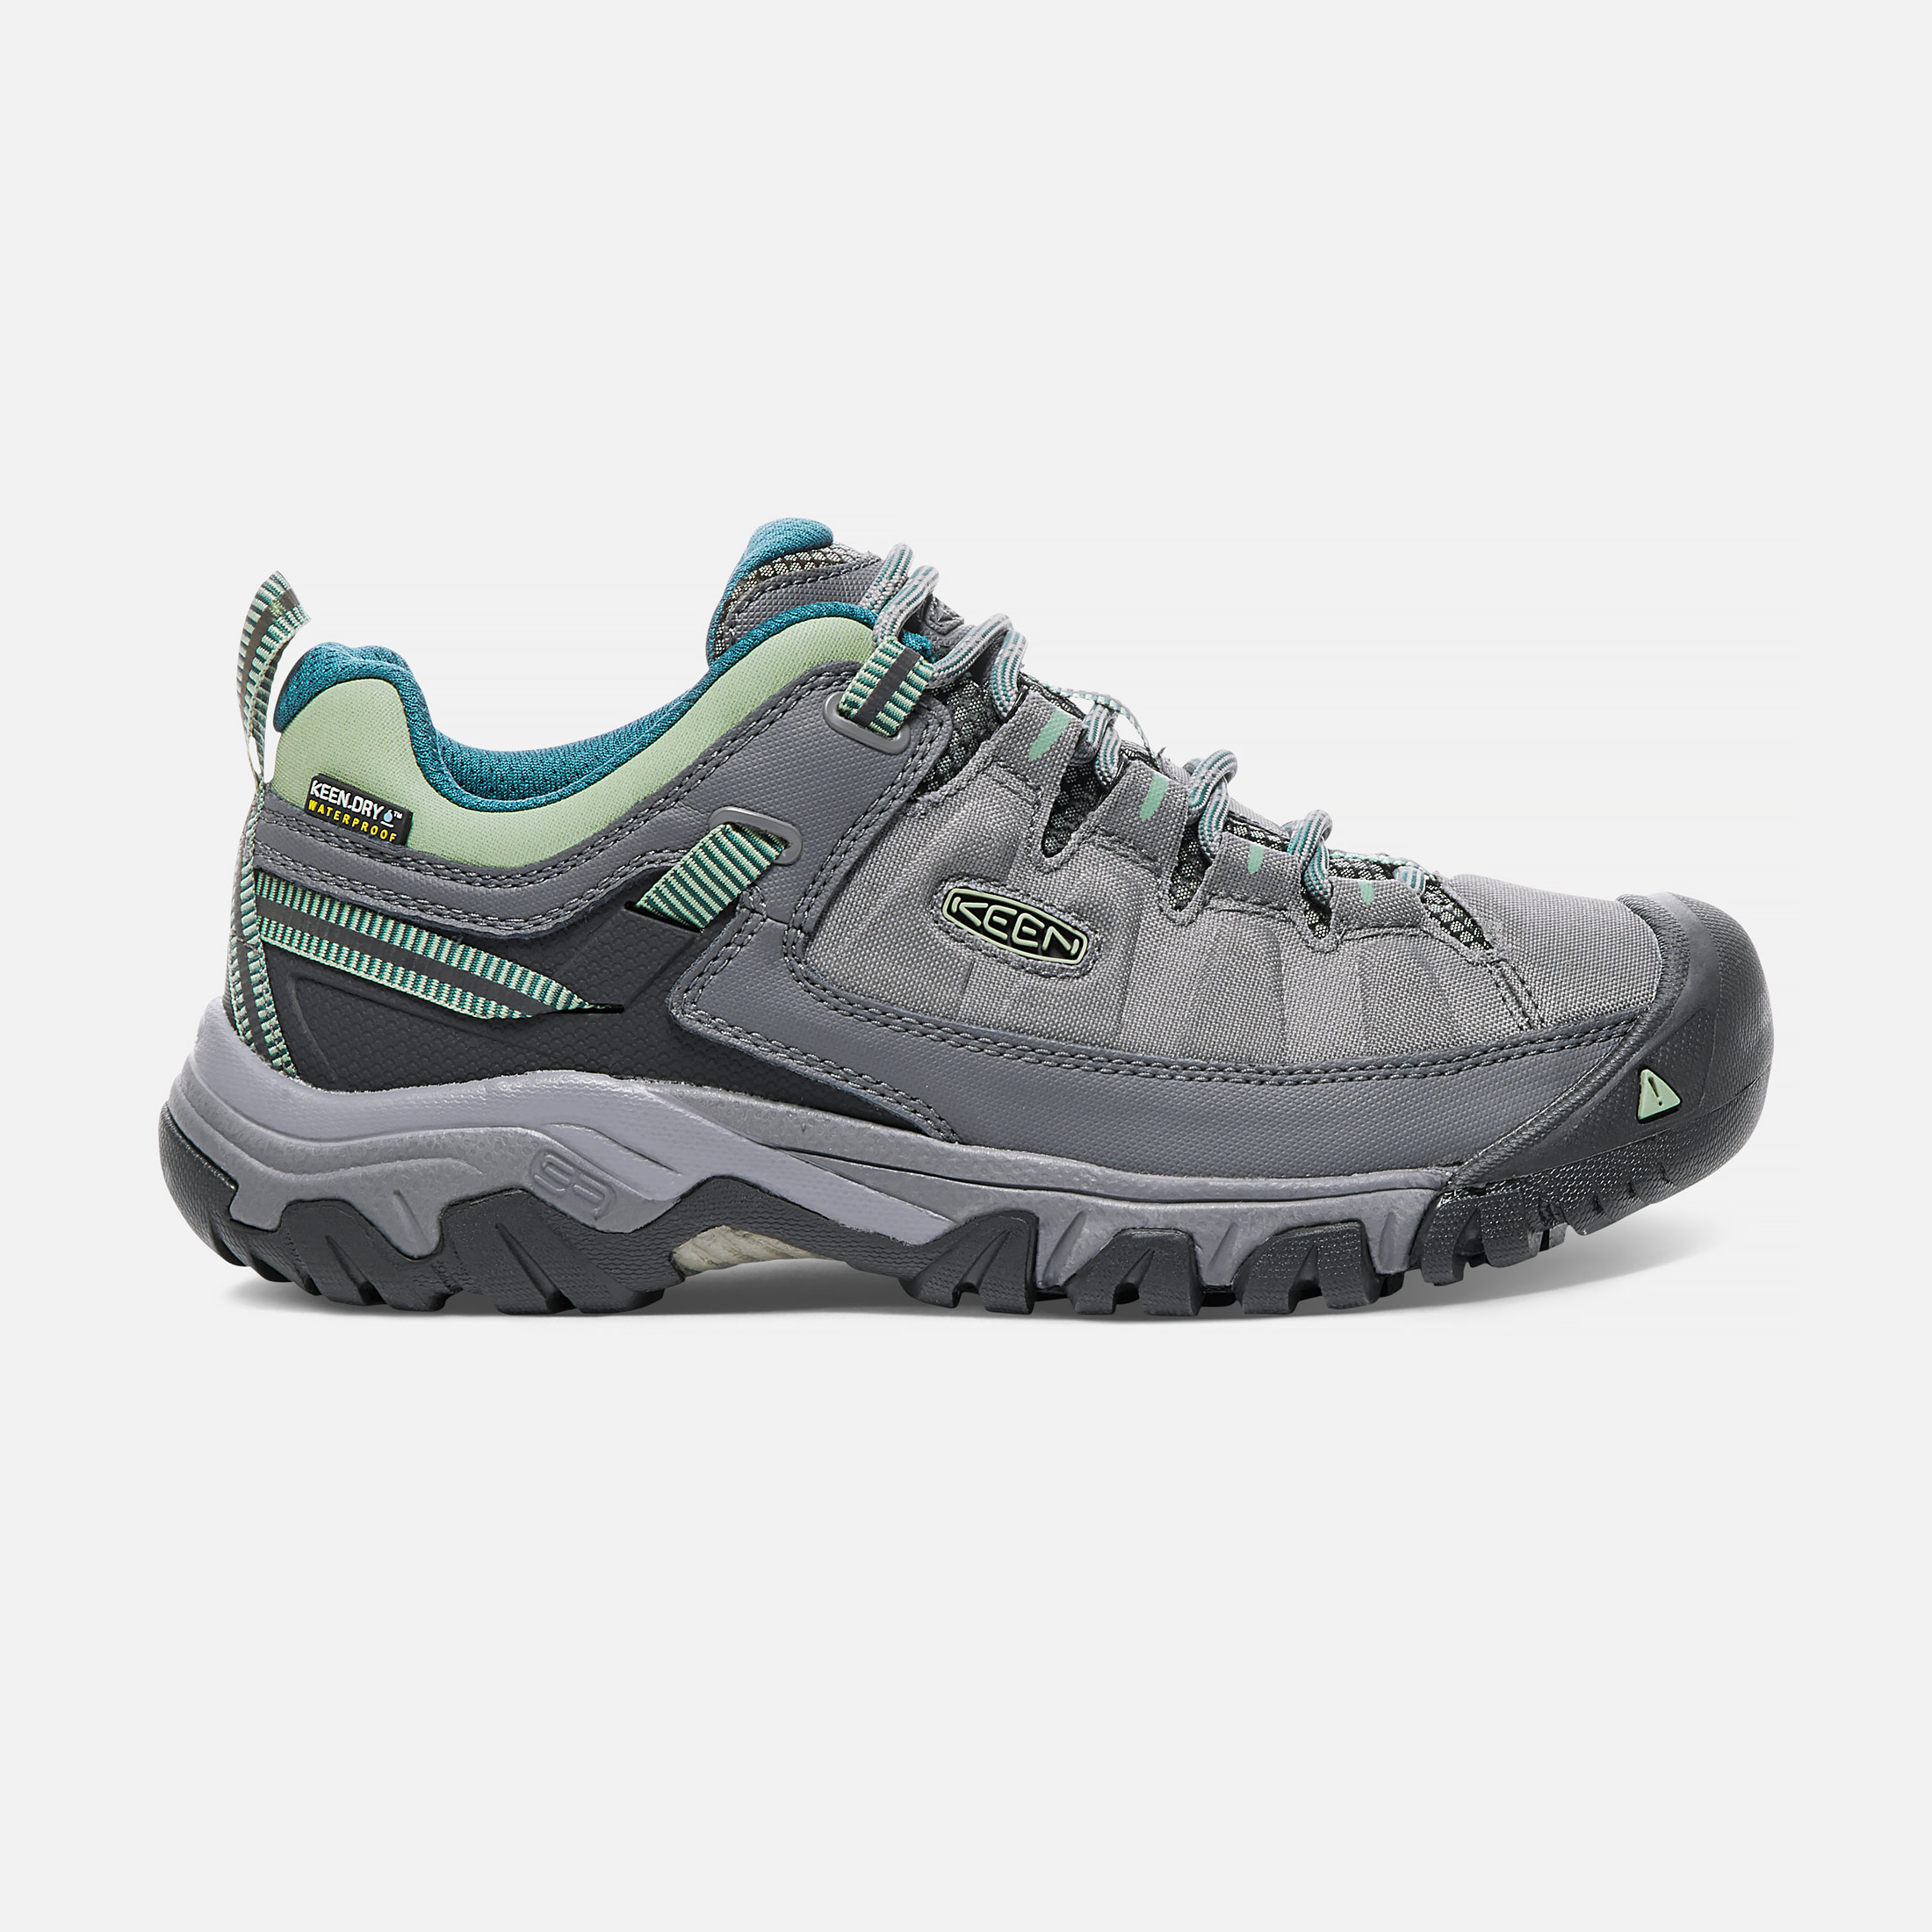 13d437c8c047 Women s TARGHEE EXP Waterproof - A trail icon that s rugged